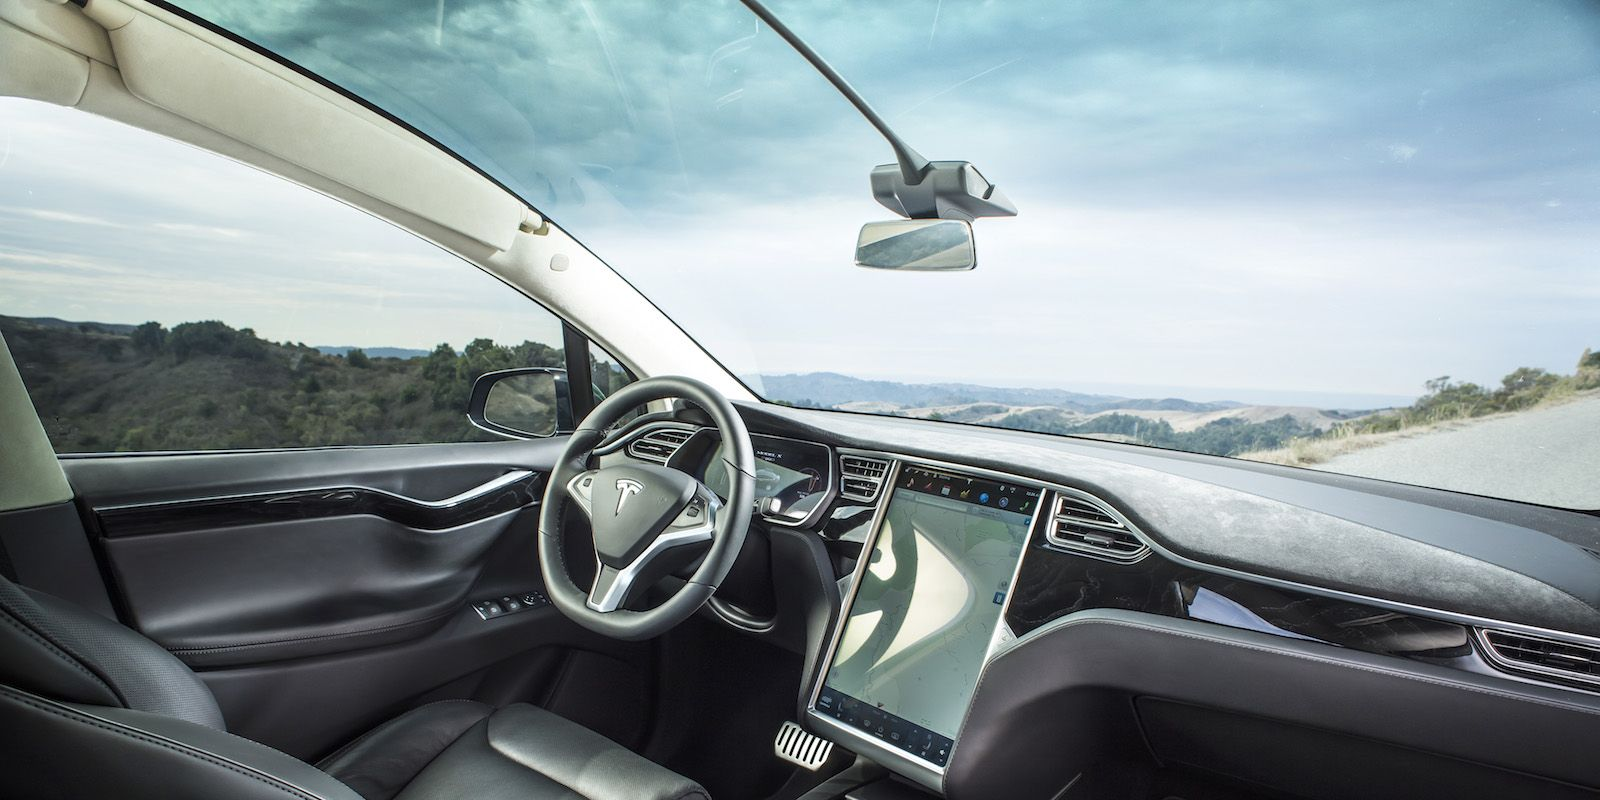 Tesla x windshield